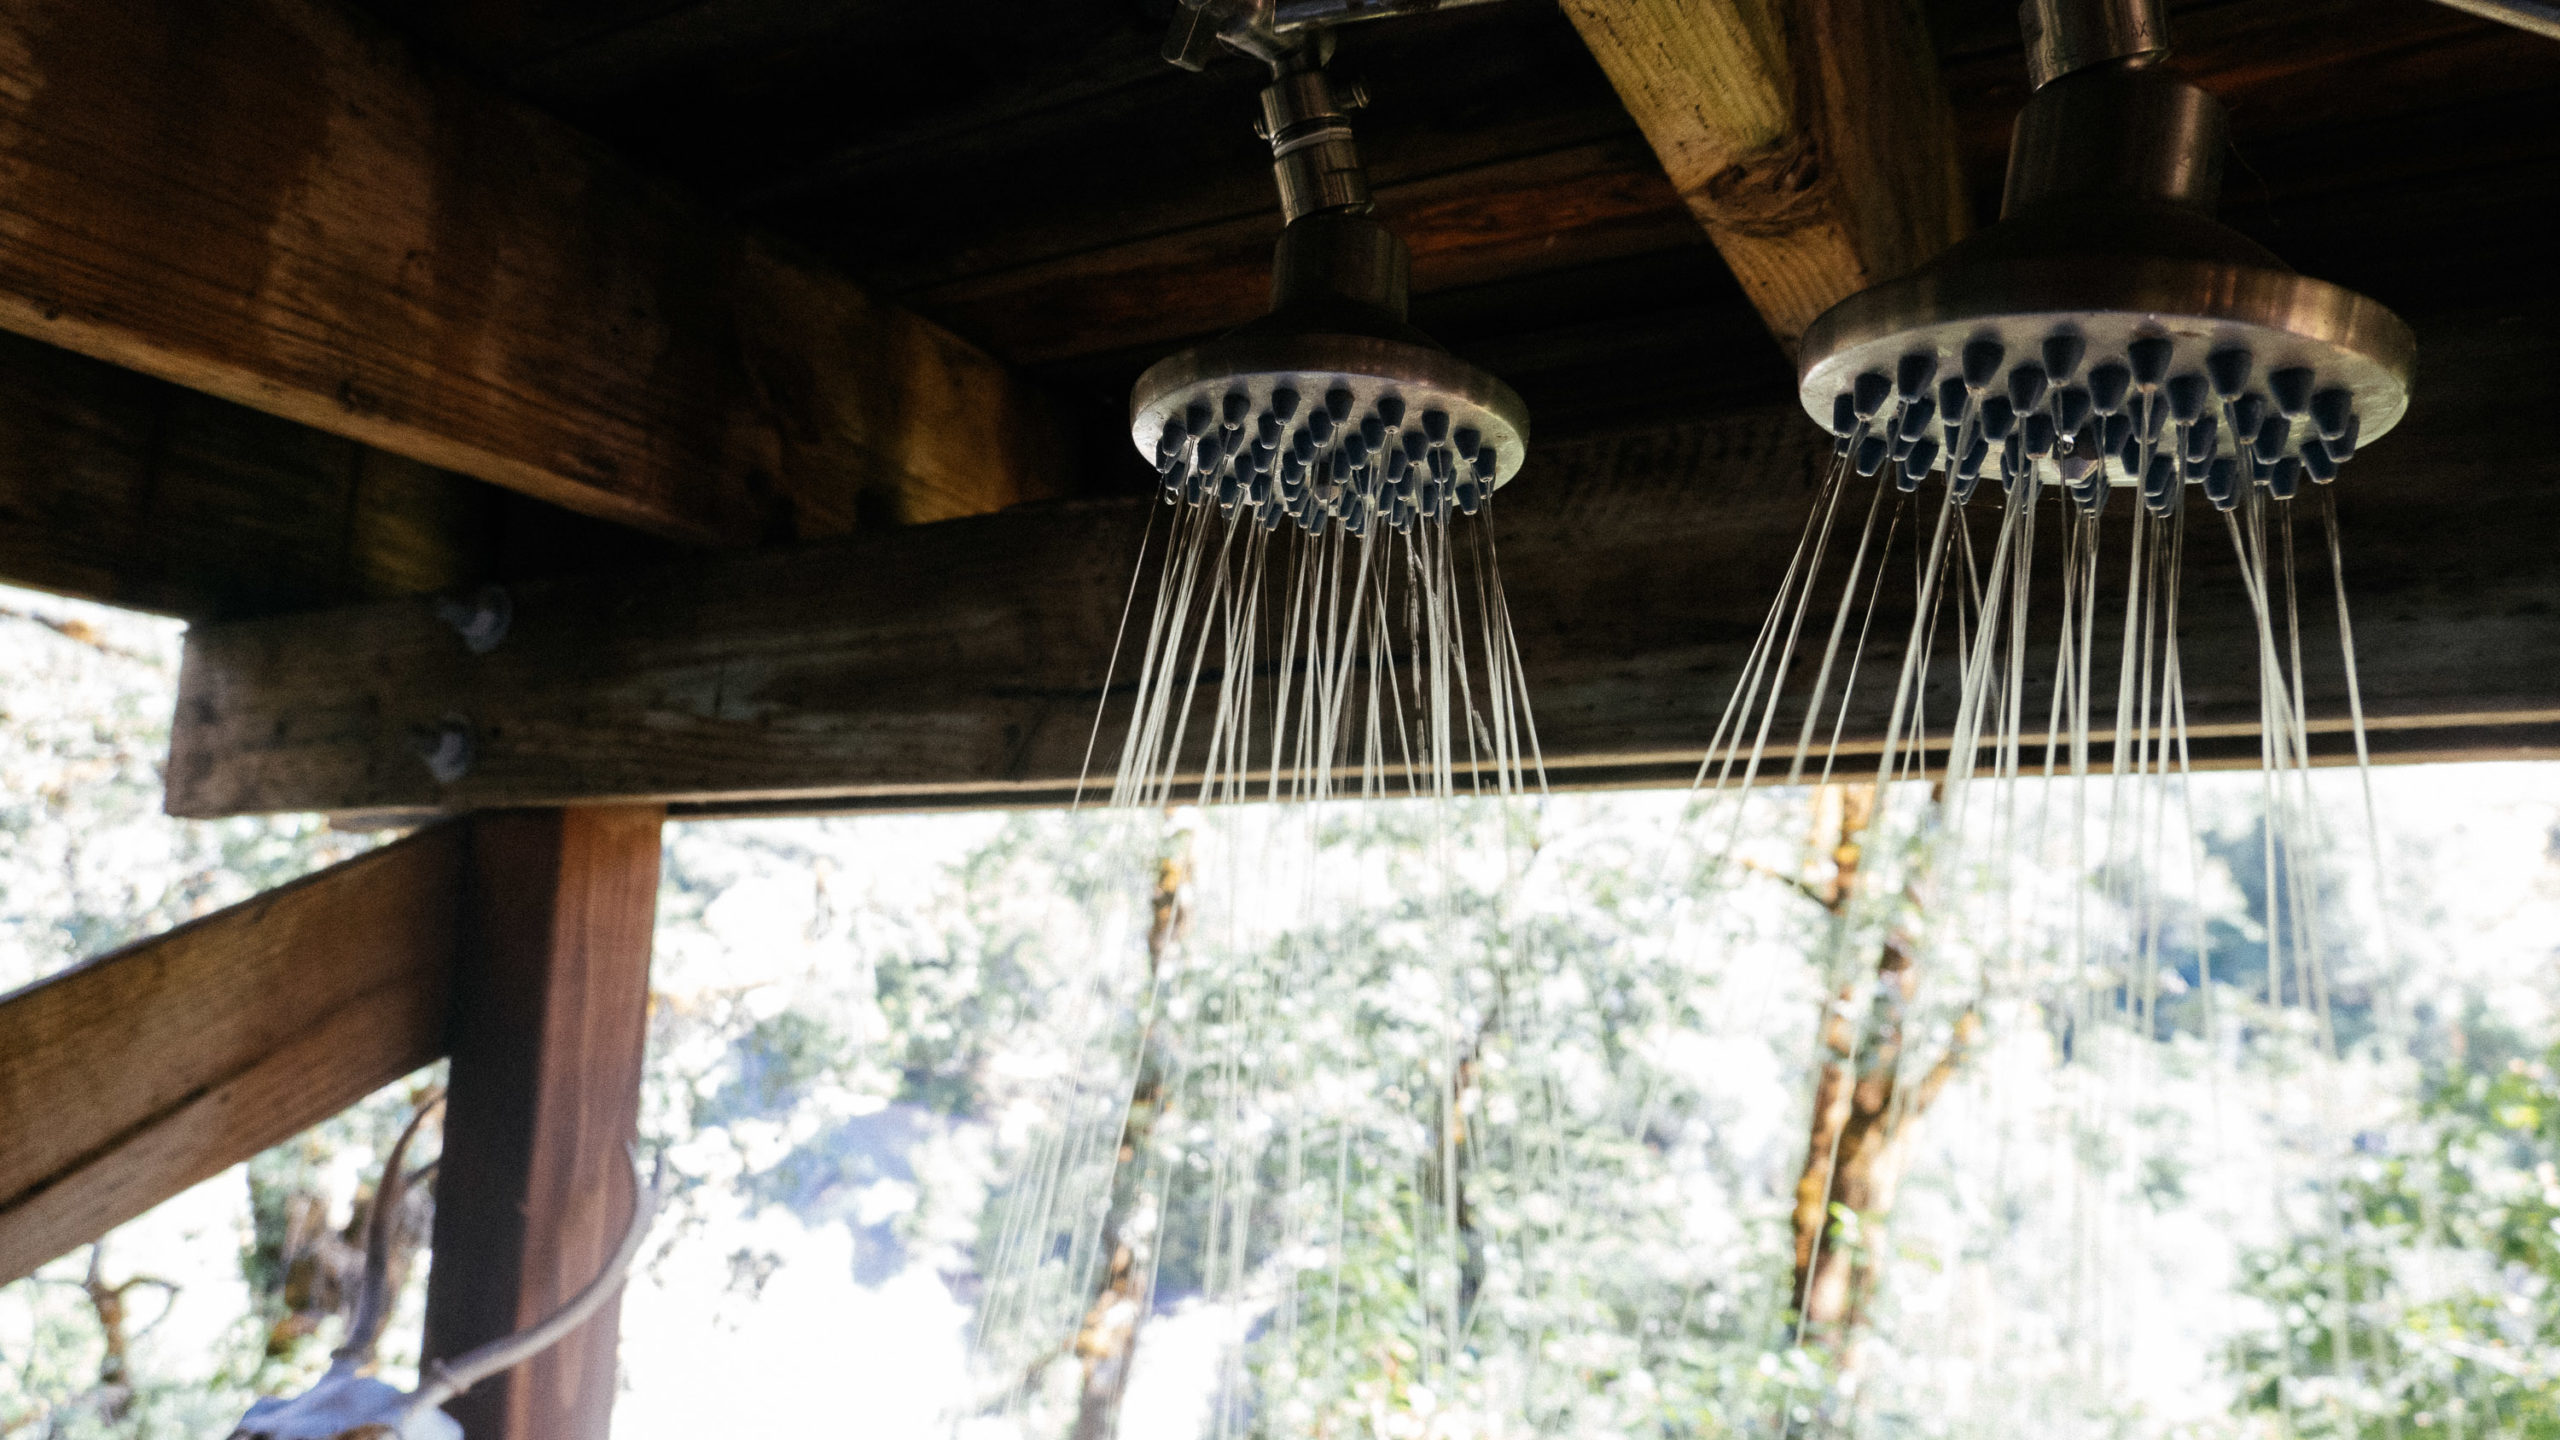 Double shower nozzles spray water in an outdoor shower